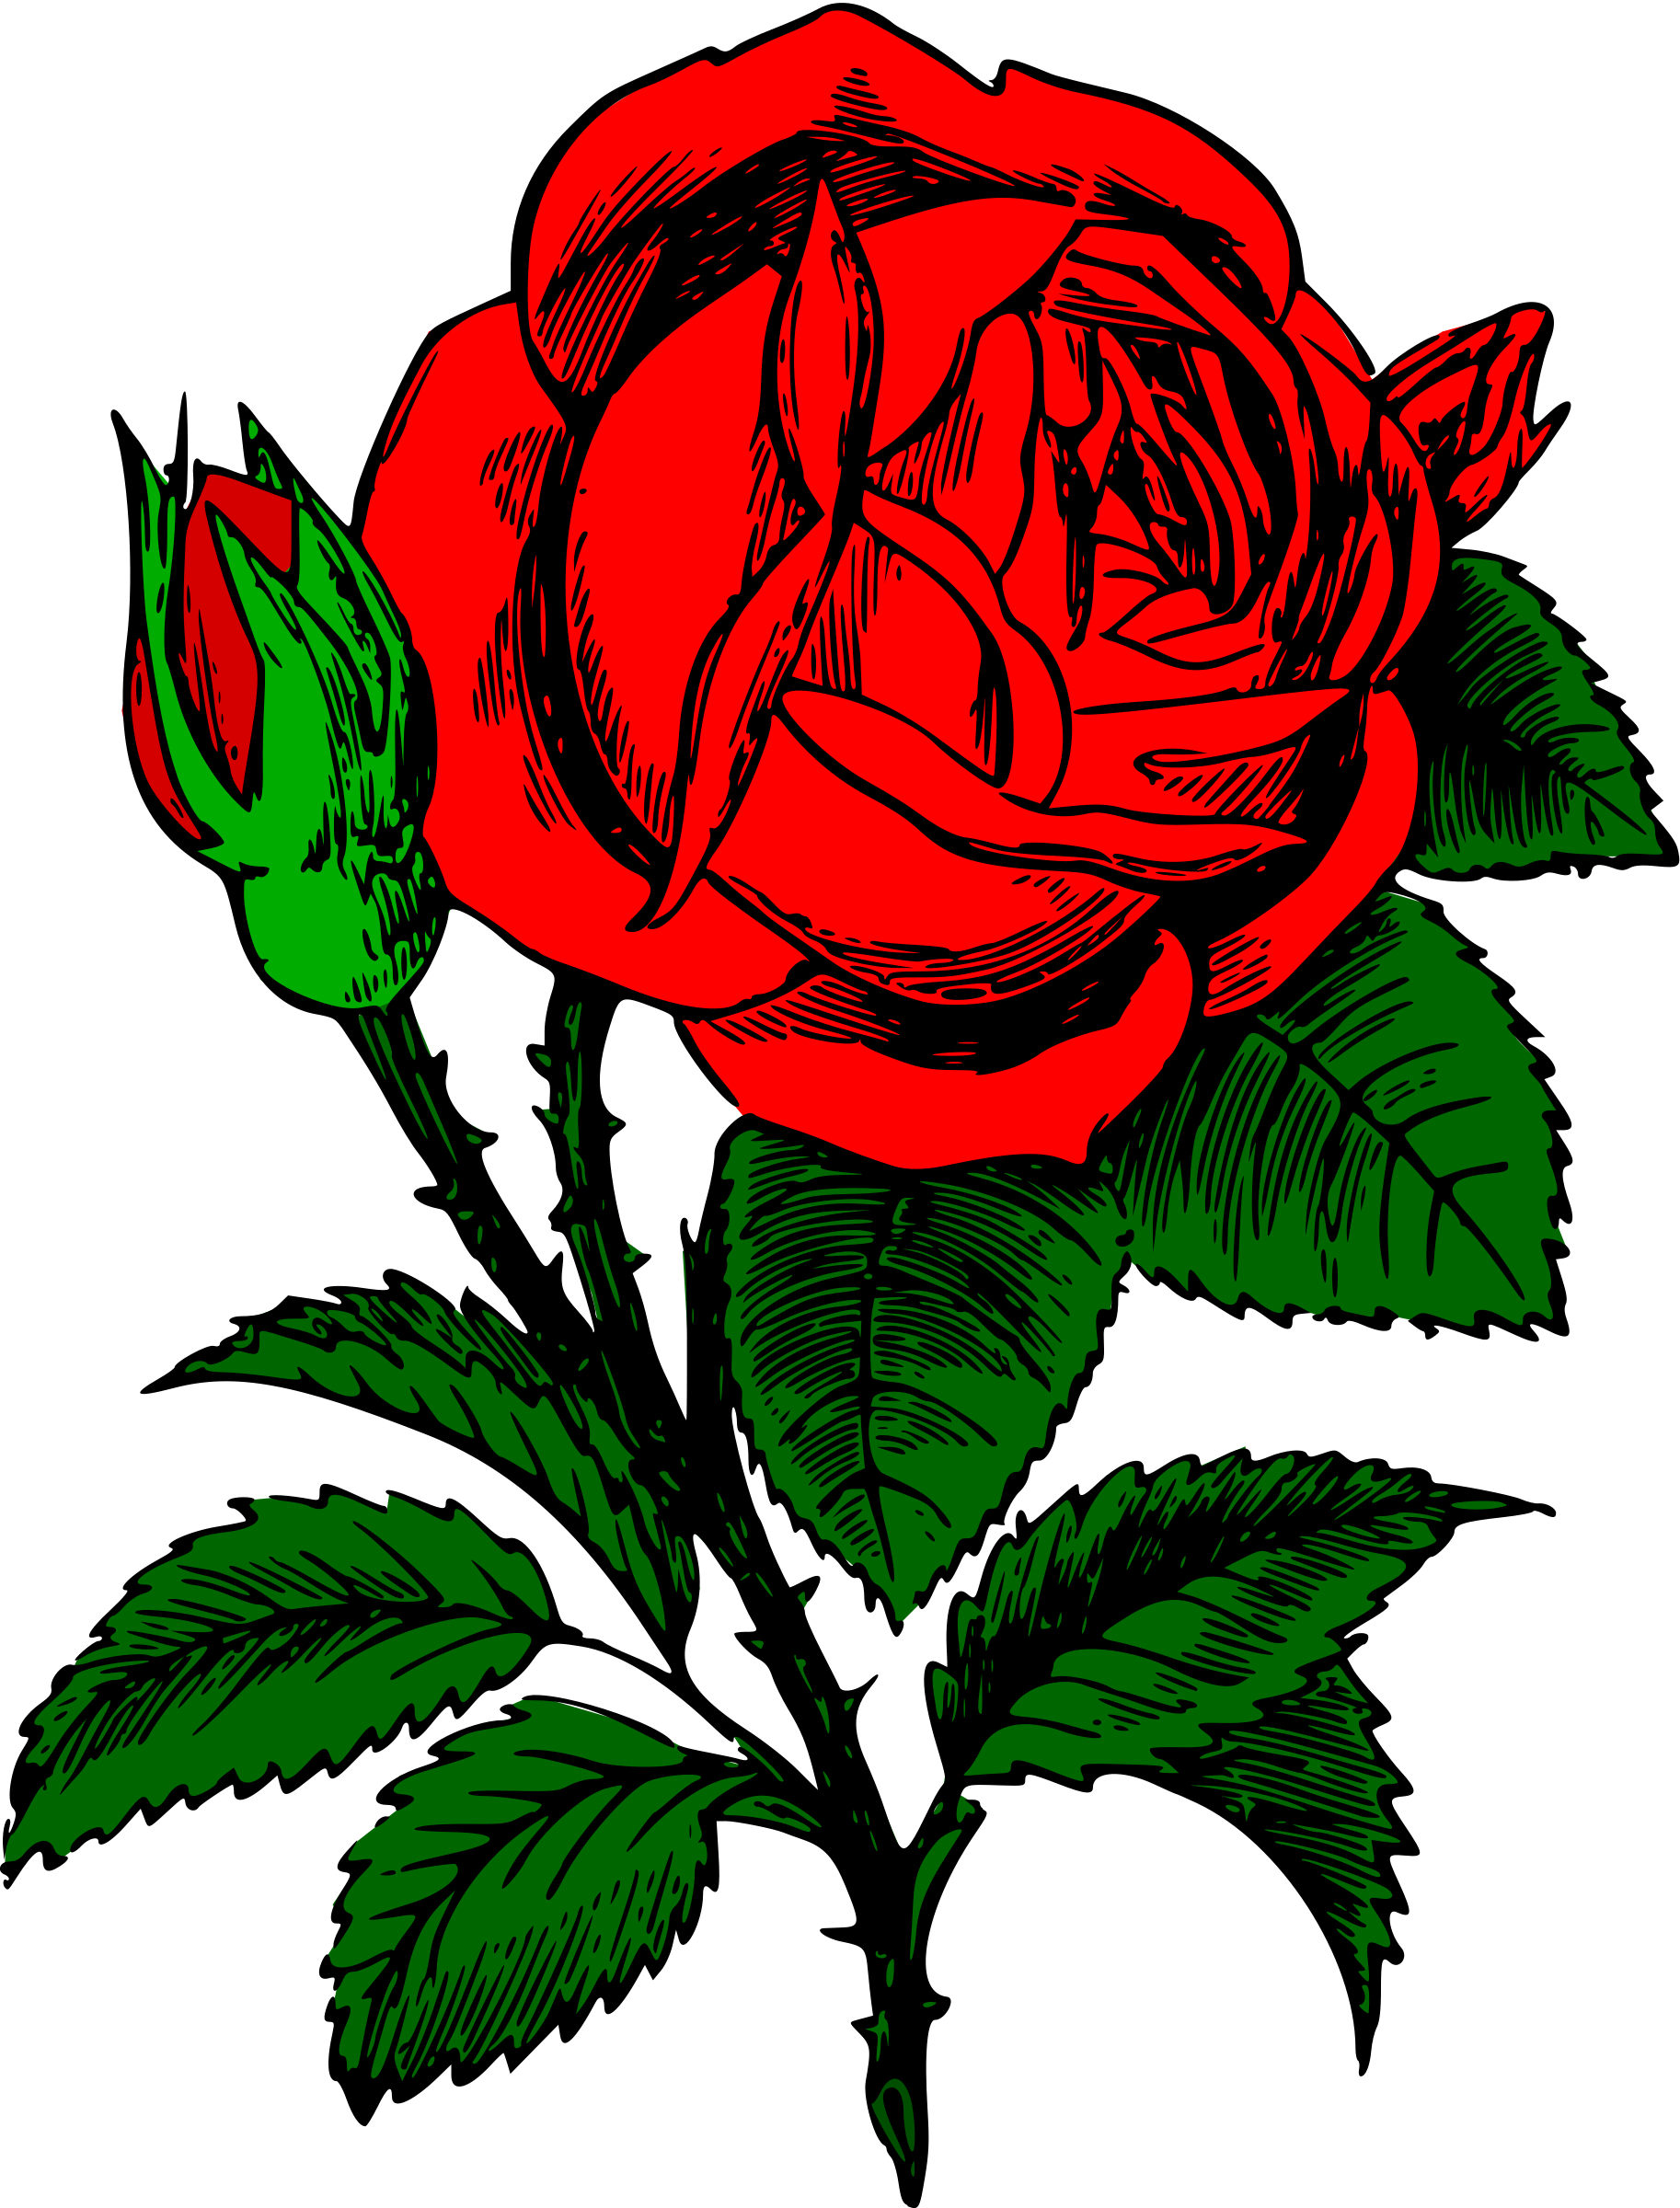 Red rose by liftarn